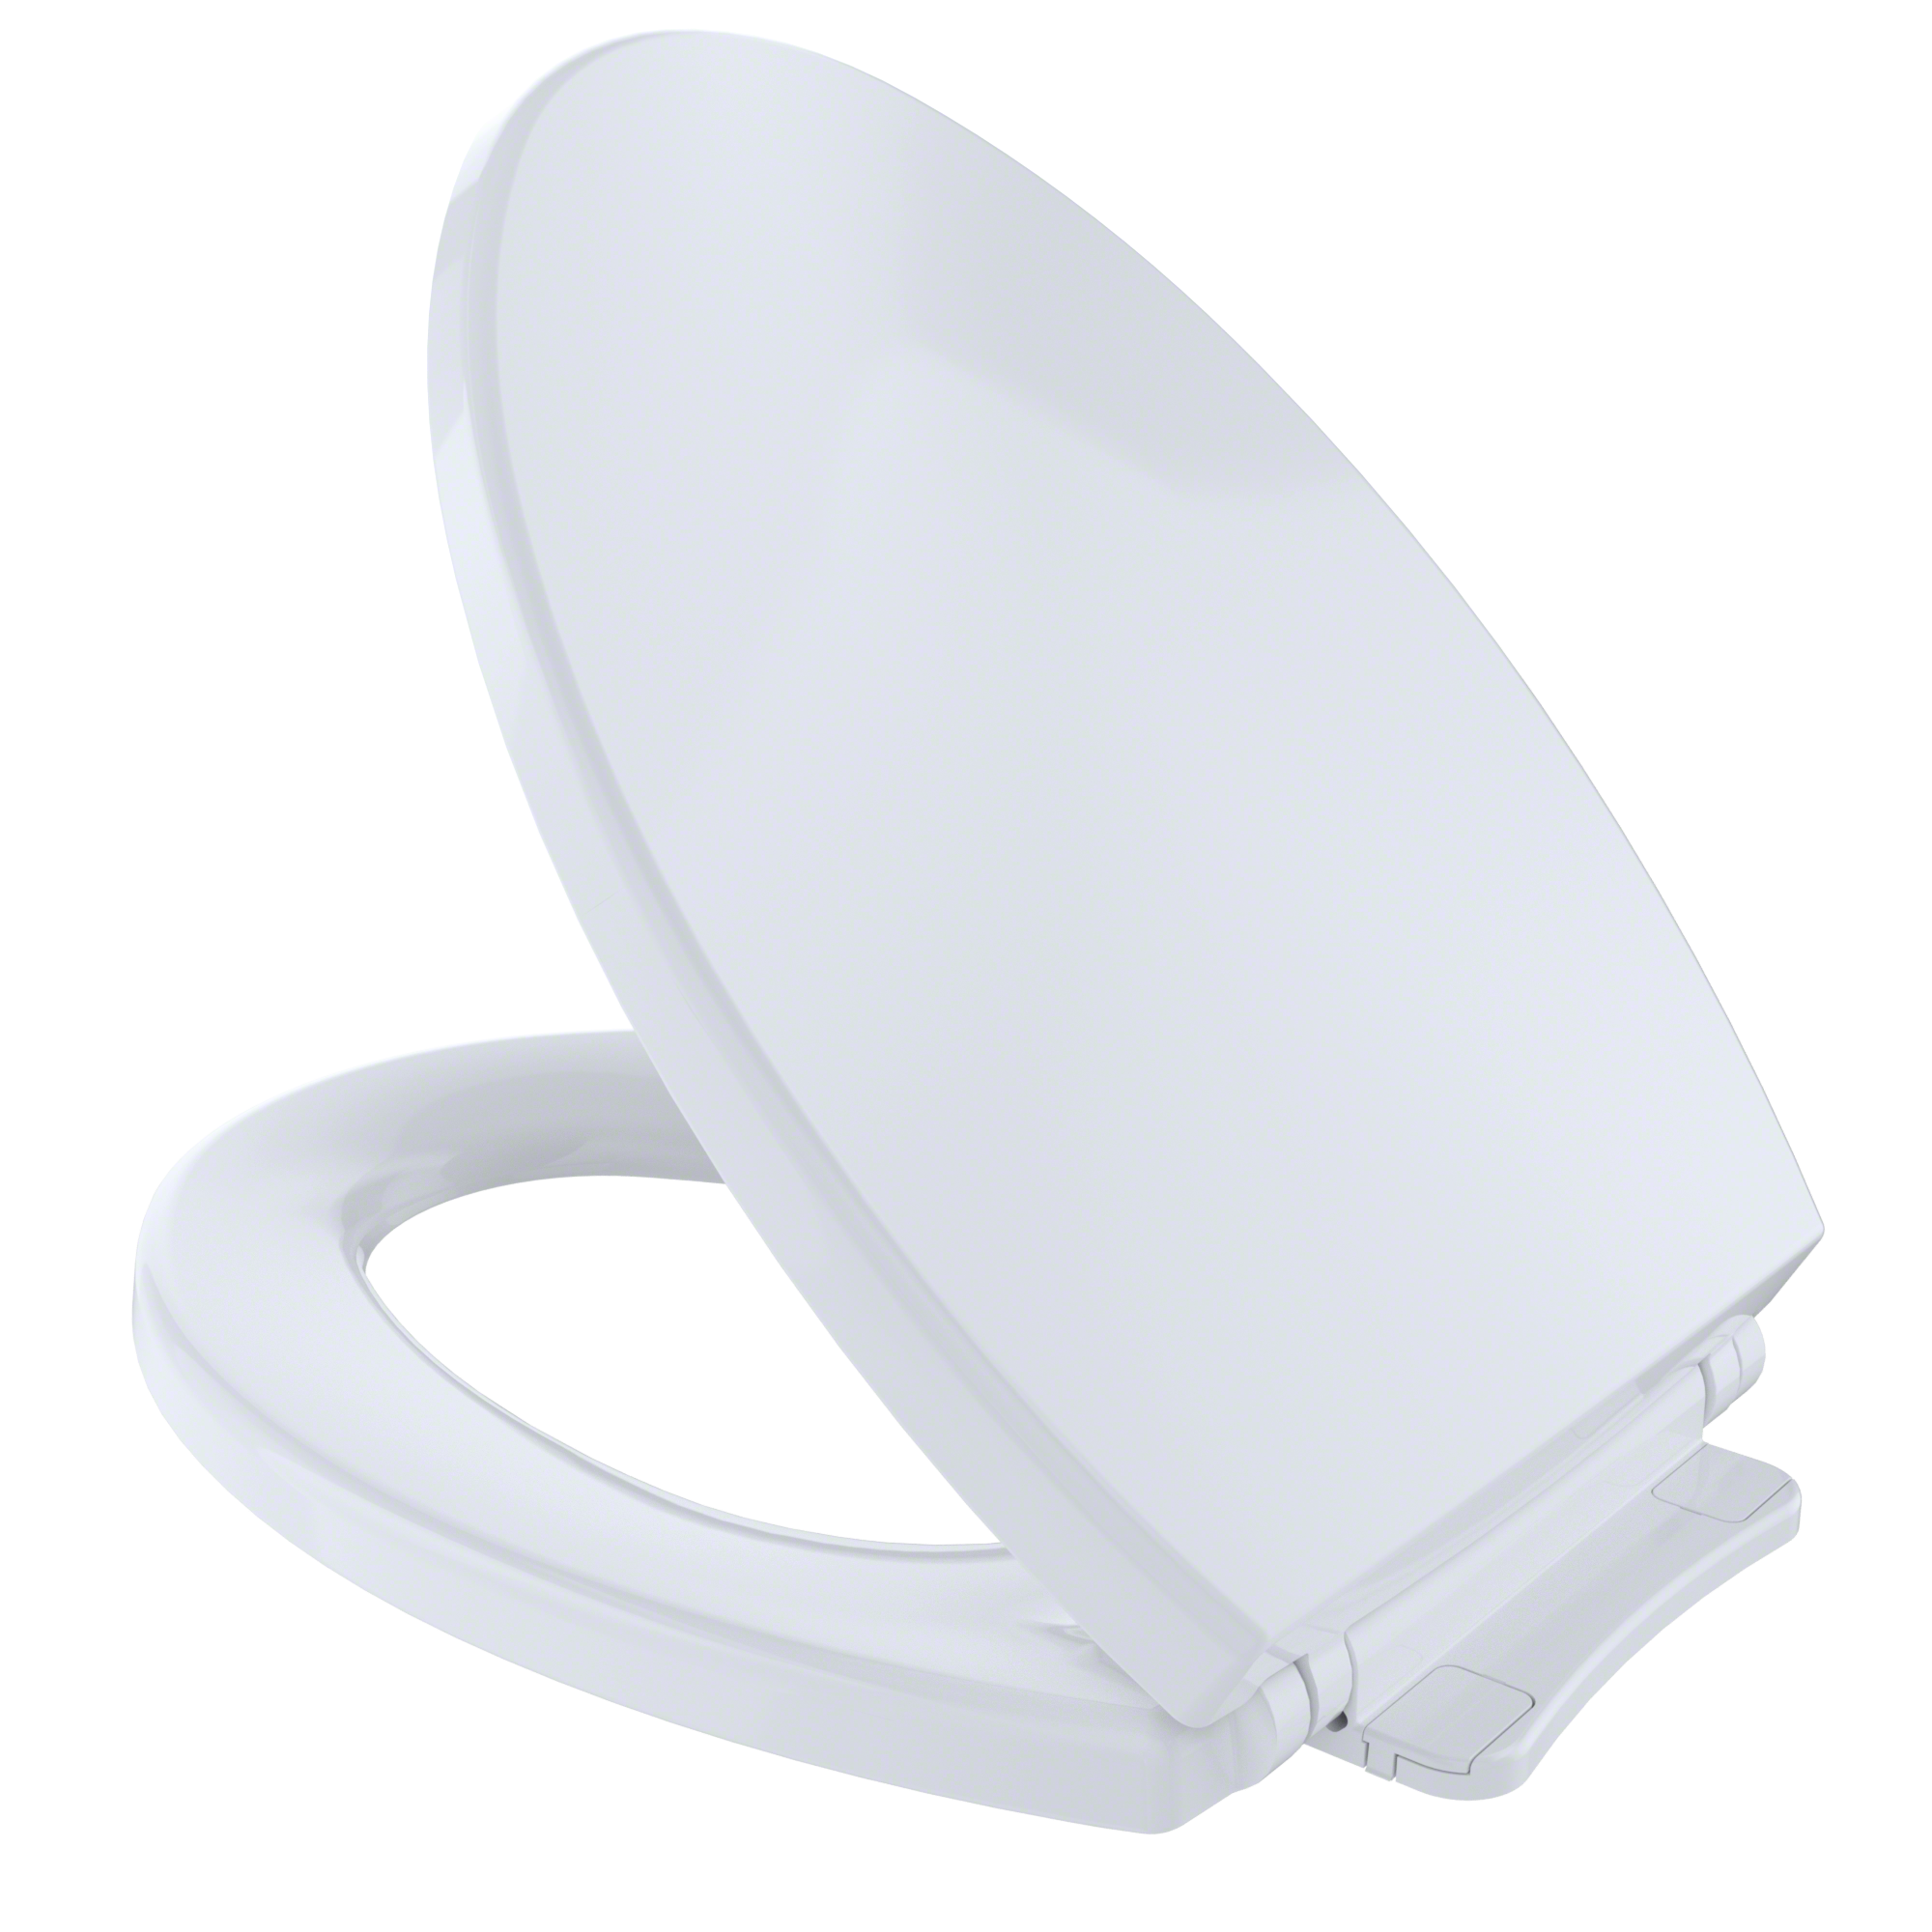 TOTO® SoftClose® Non Slamming, Slow Close Elongated Toilet Seat and Lid, Cotton White - SS114#01